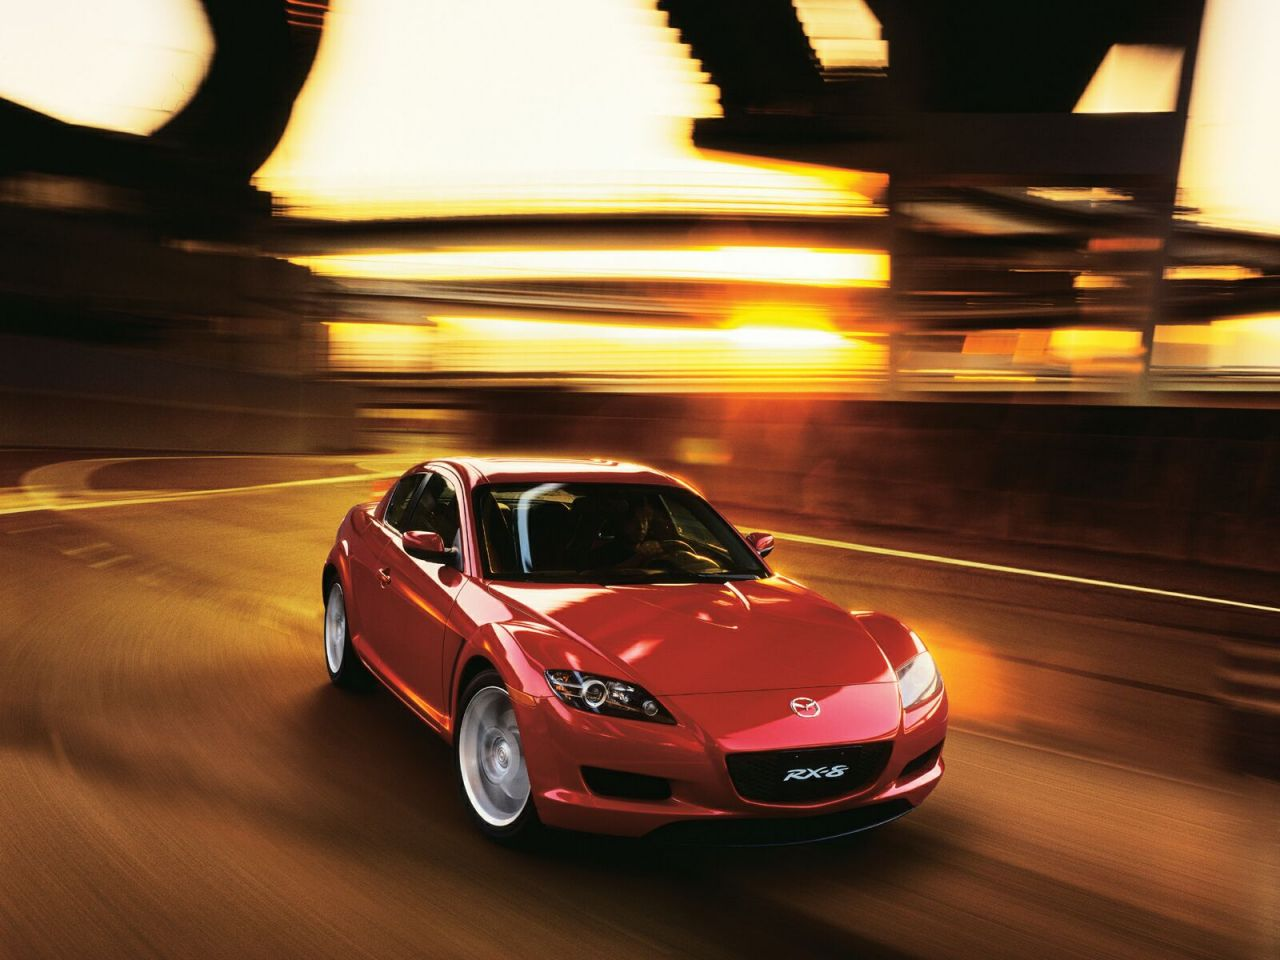 Mazda Rx8 Red Front Angle Moving Wallpaper 1280x960